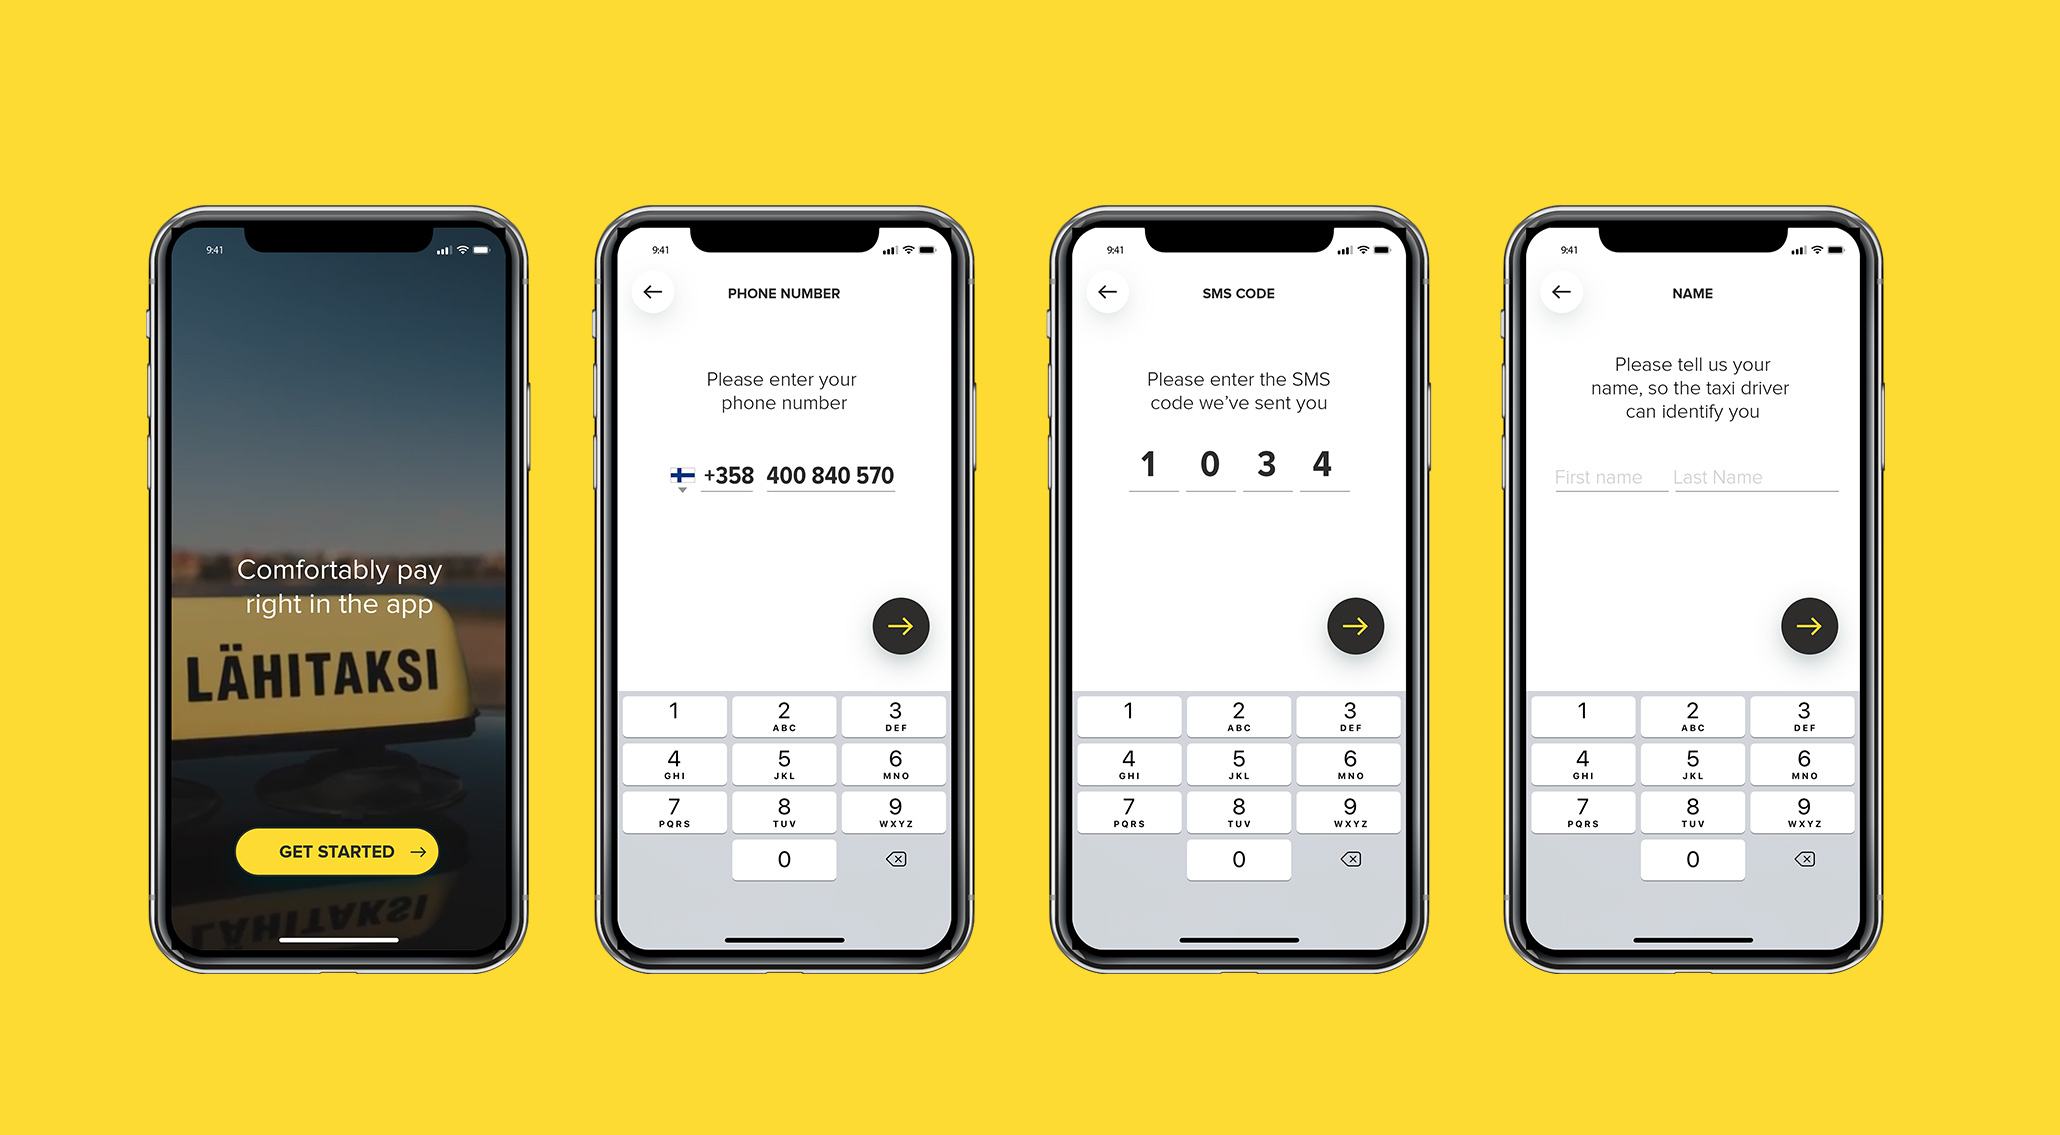 Modern onboarding without additional passwords for the user to remember. Instead app is activated using one time password sent to the mobile phone.